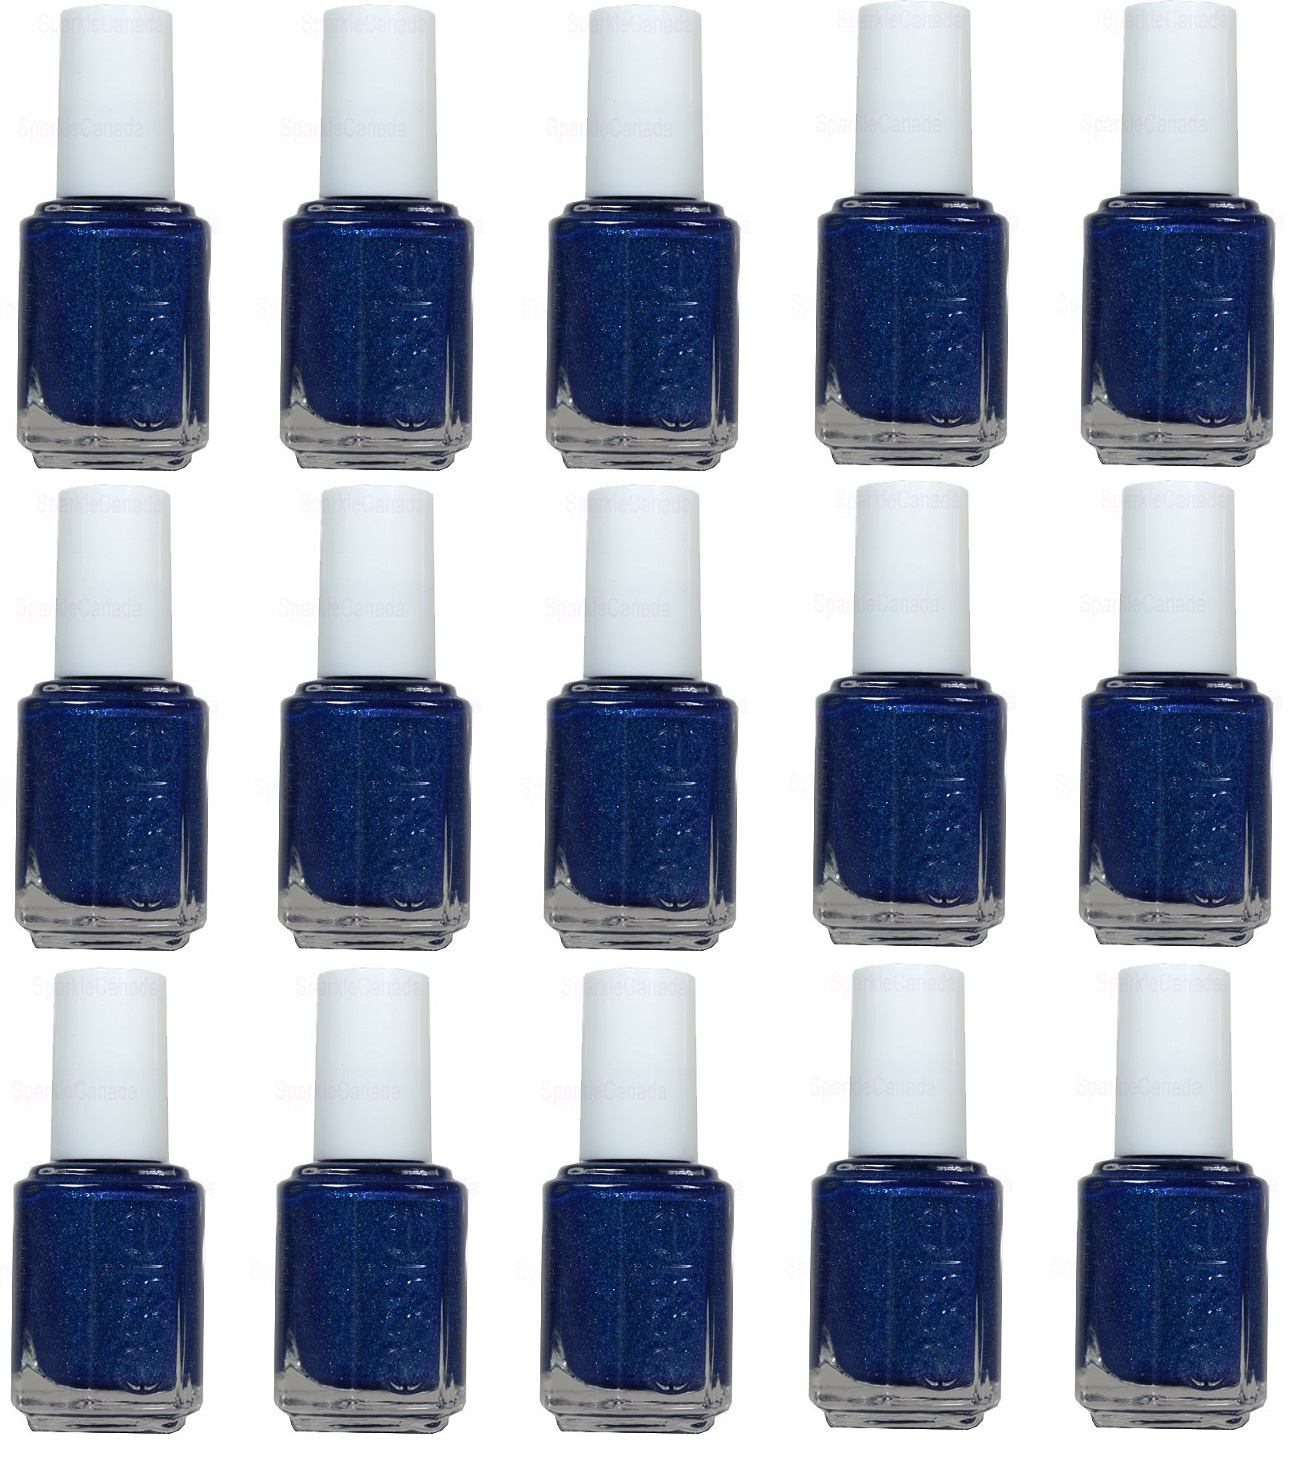 Essie Nail Polish, 962 Lots Of Lux Choose Your Pack | Cosmetics, Eye ...